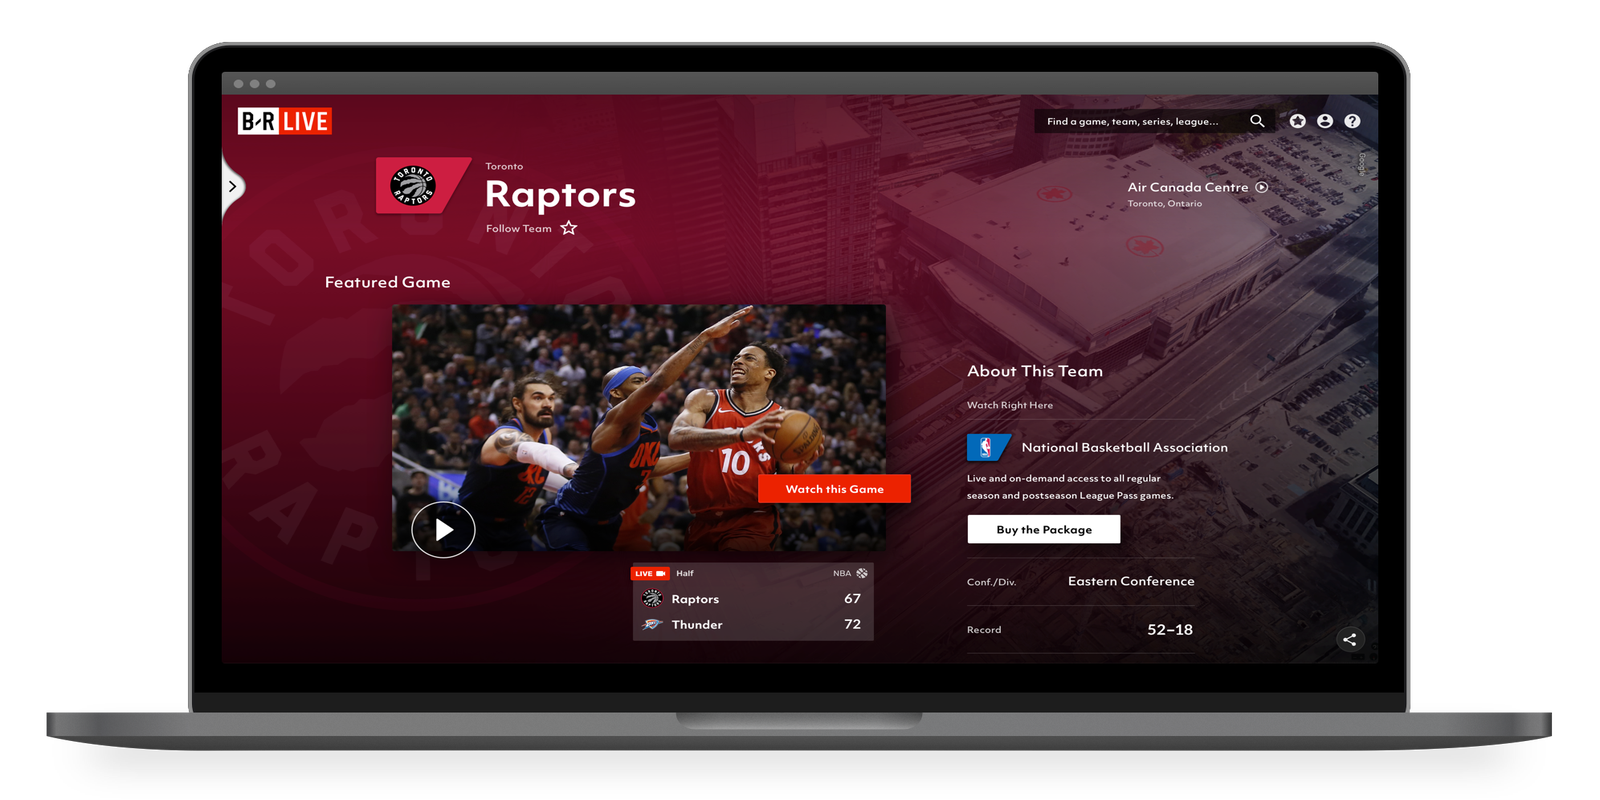 New Bleacher Report Live sports streaming service kicks off